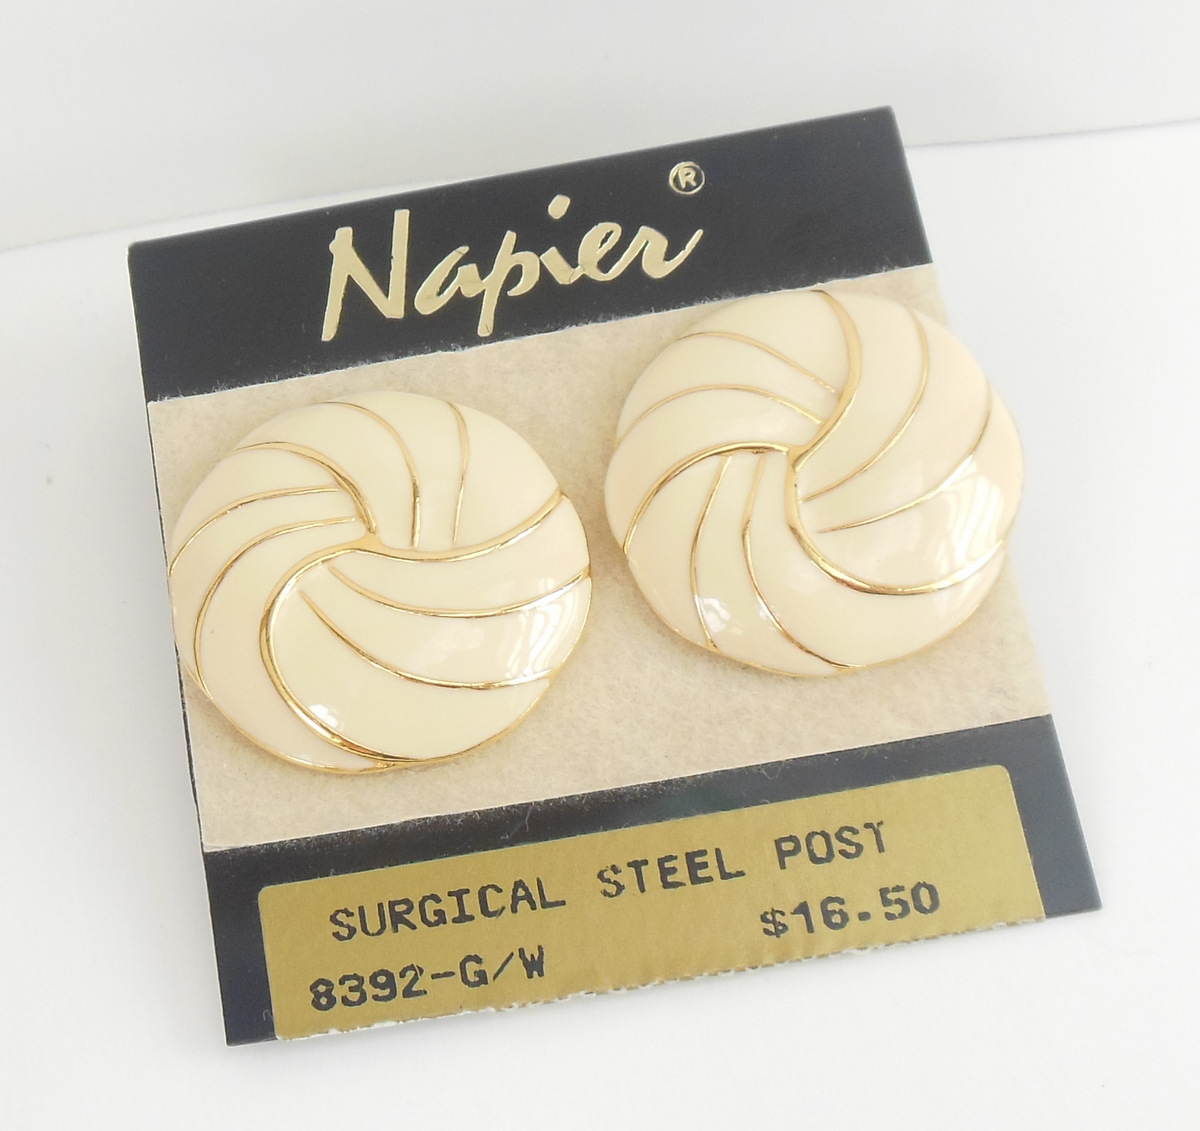 Ladies Napier Earrings Swirled Pattern Cream Color Pierced Surgical Steel Posts